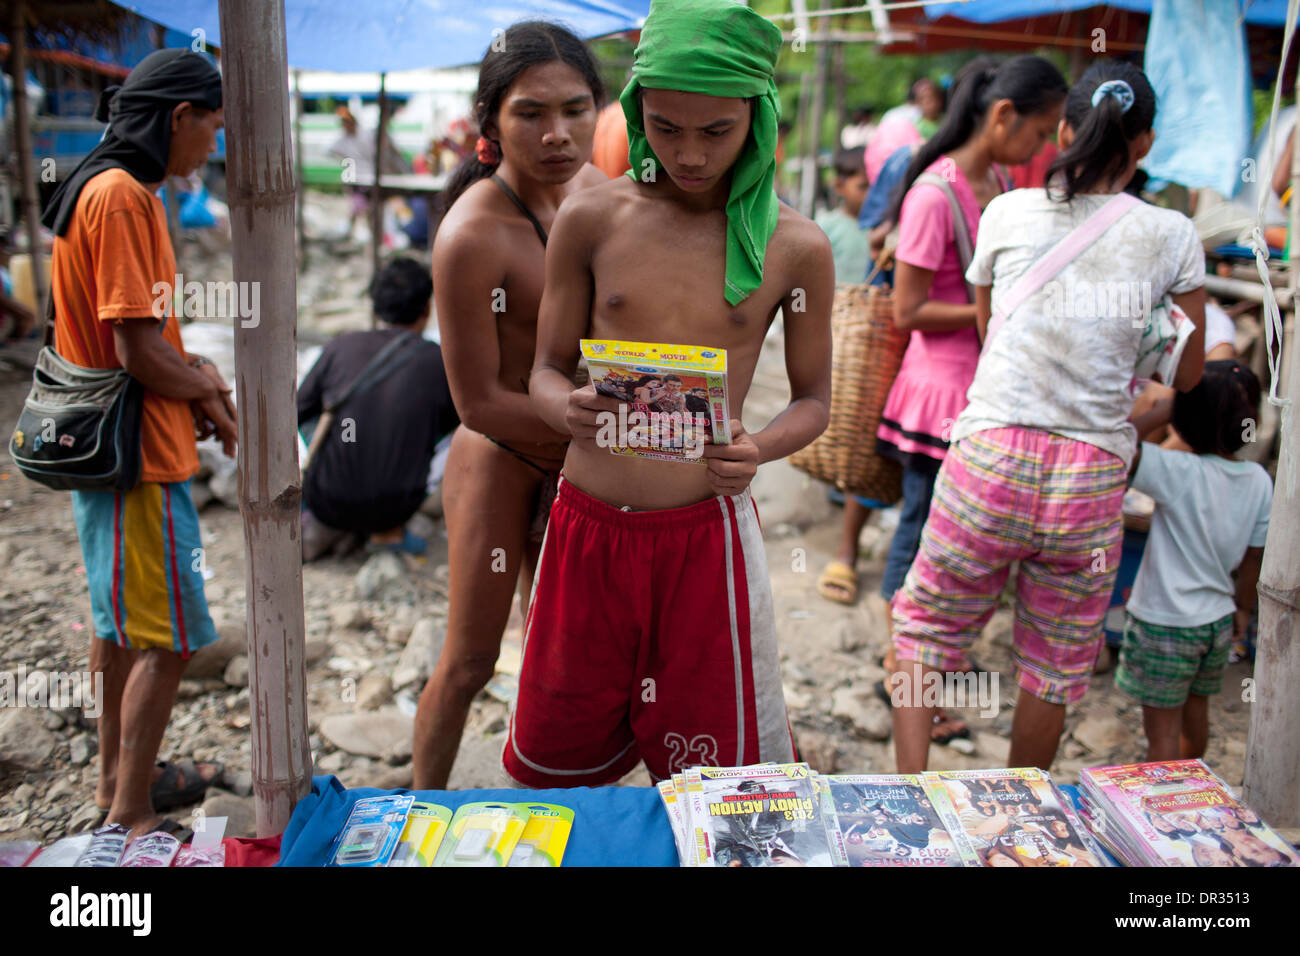 A Hanunoo Mangyan browses DVD titles for sale at a Mangyan market near Mansalay, Oriental Mindoro, Philippines. - Stock Image